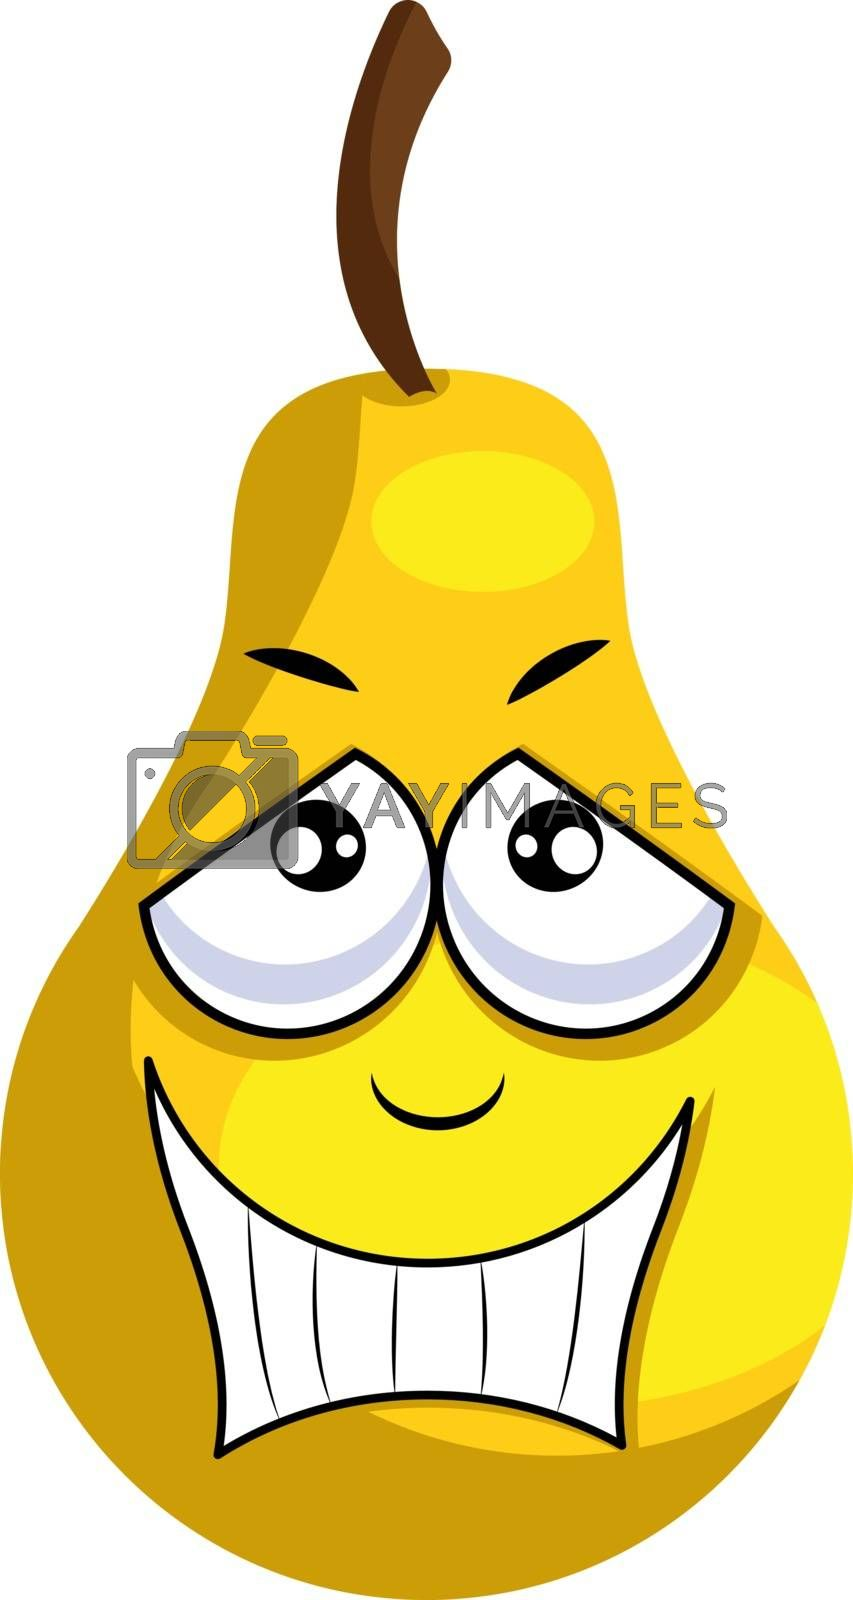 Royalty free image of Yellow apple smiling illustration vector on white background by Morphart